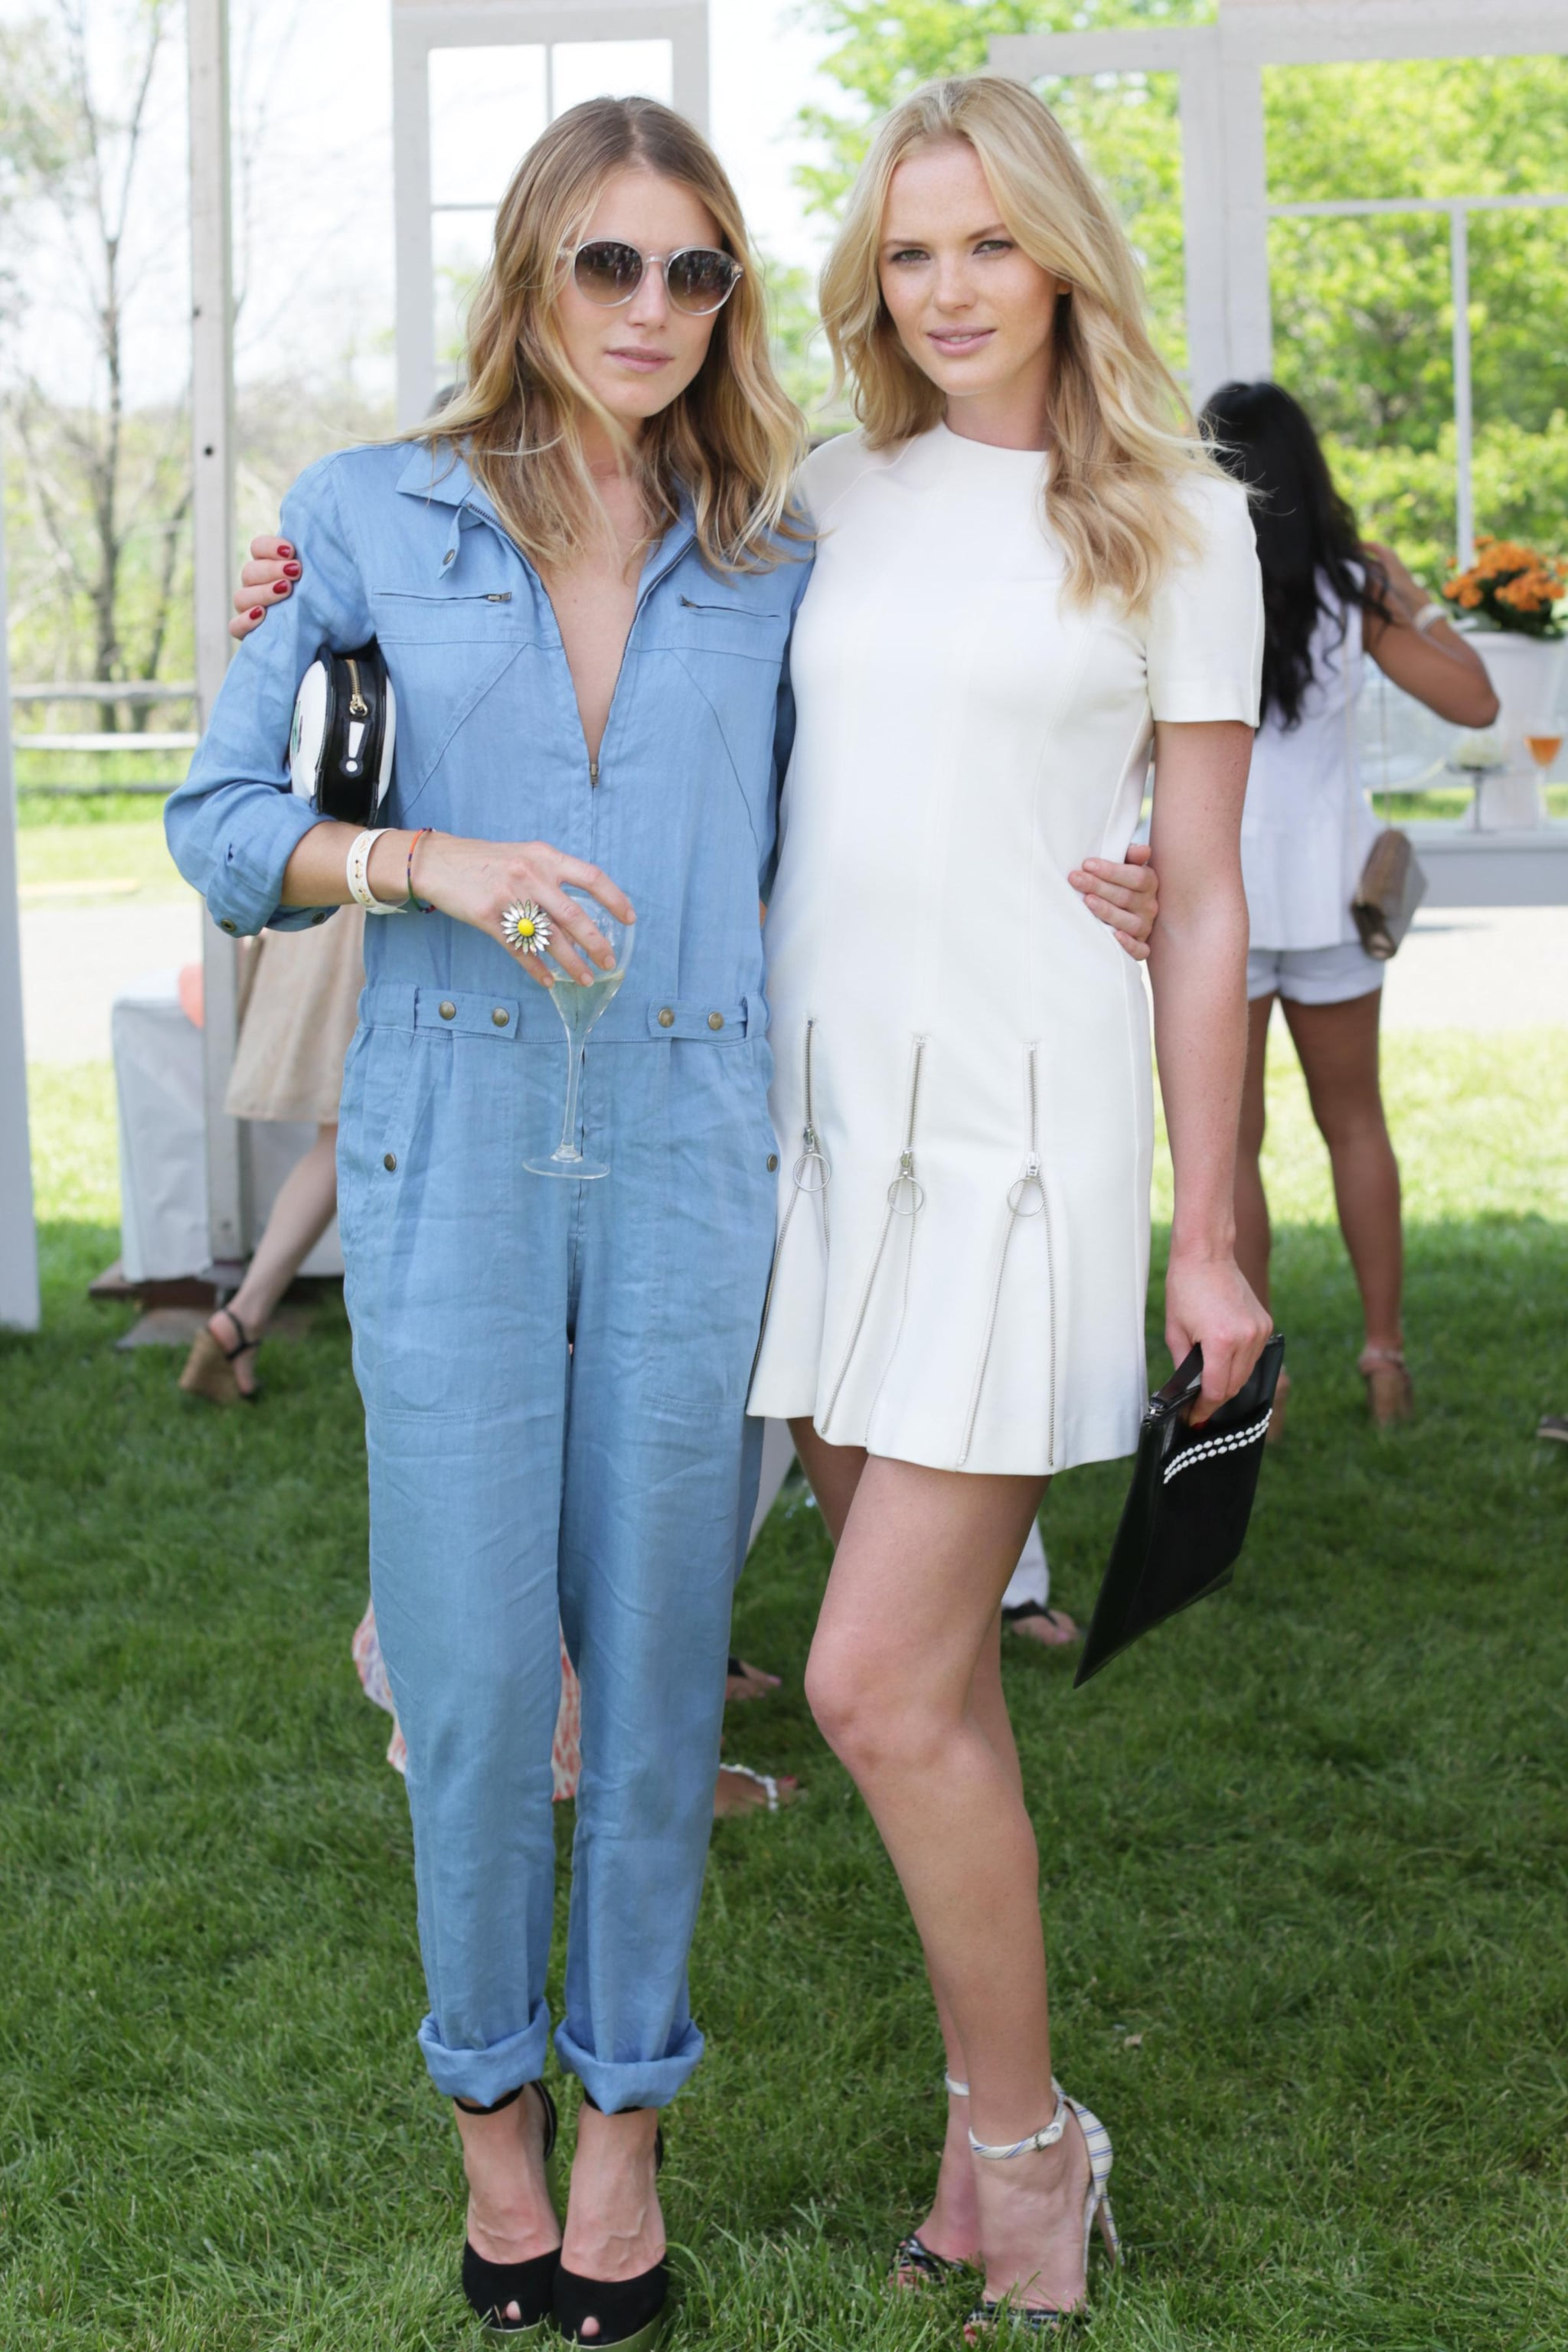 Dree Hemingway and Anne Vyalitsyna at the sixth annual Veuve Clicquot Polo Classic in Jersey City, NJ.  Source: David X Prutting/BFAnyc.com